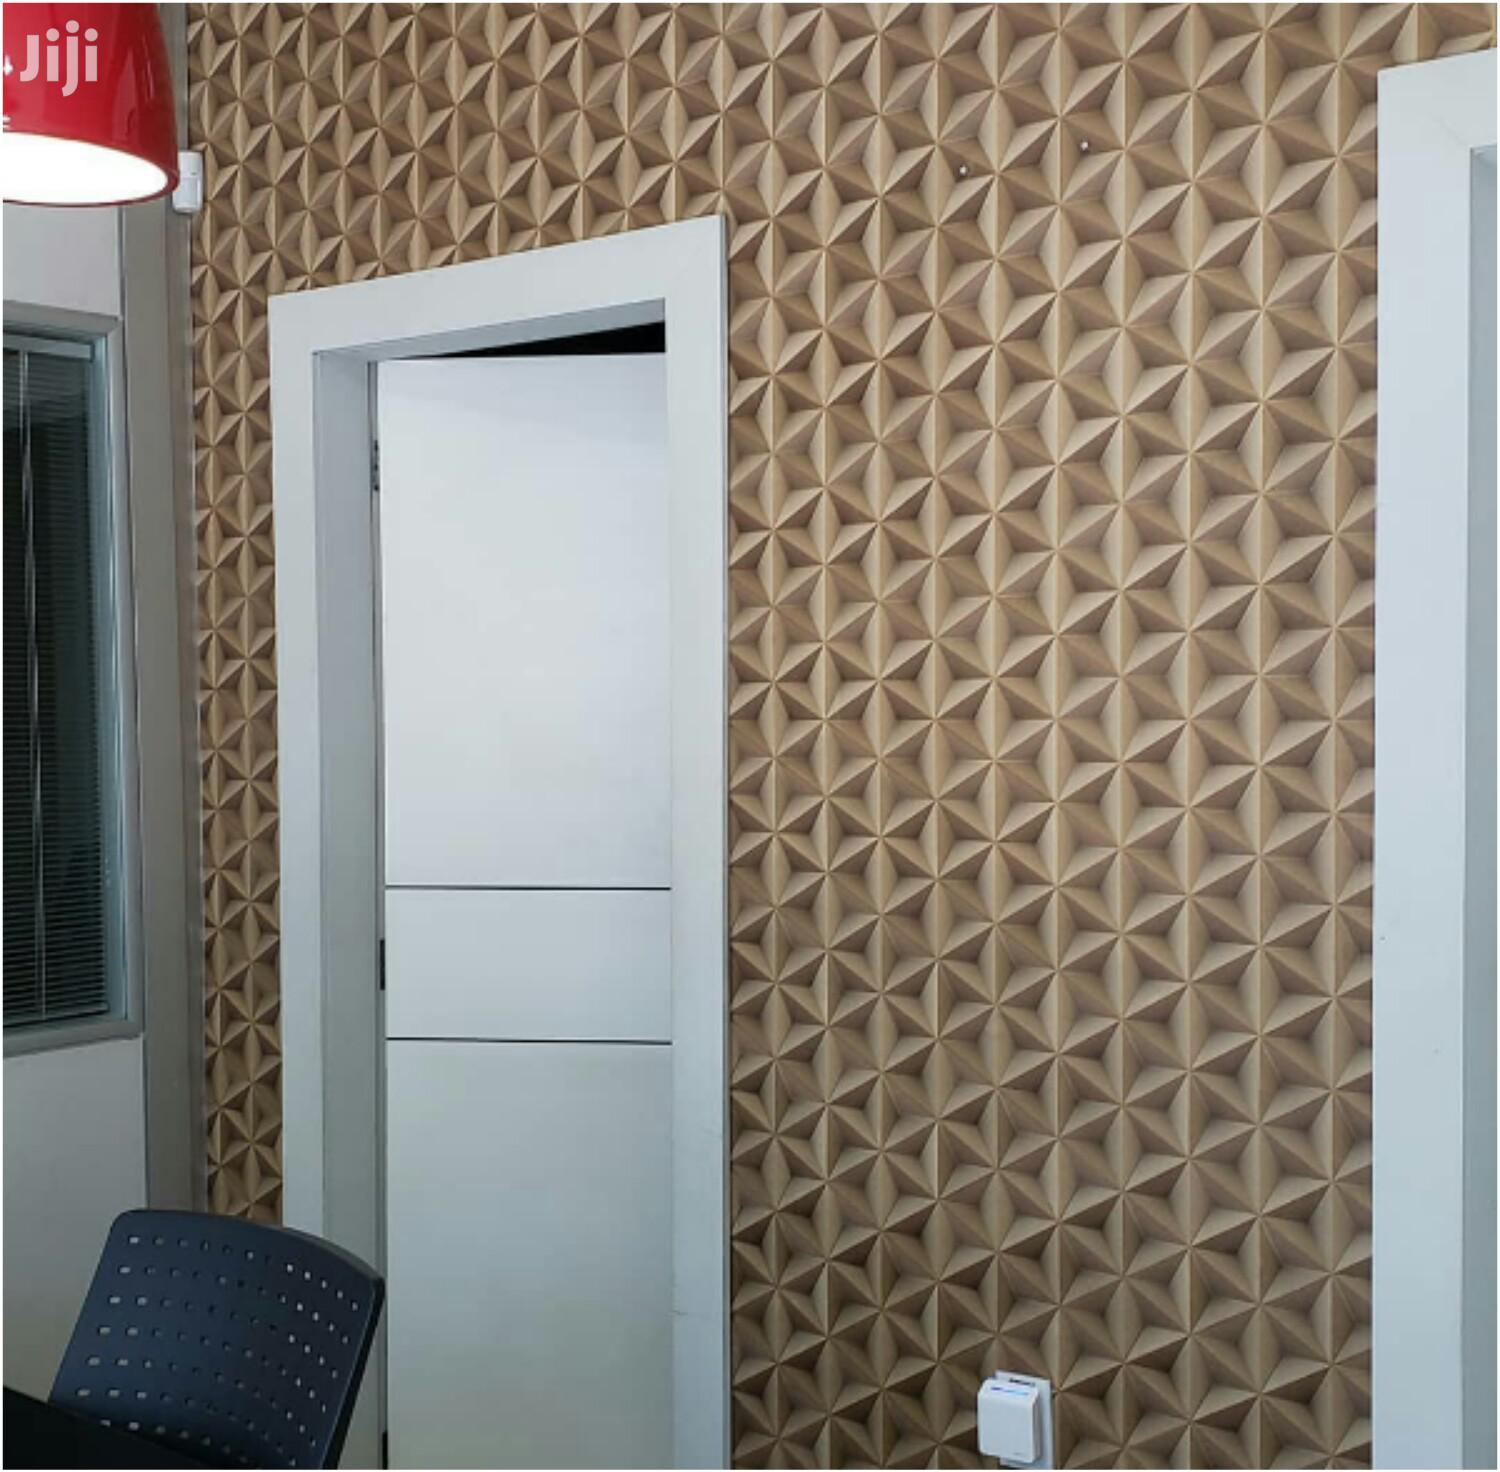 Wallpapers | Home Accessories for sale in Maitama, Abuja (FCT) State, Nigeria